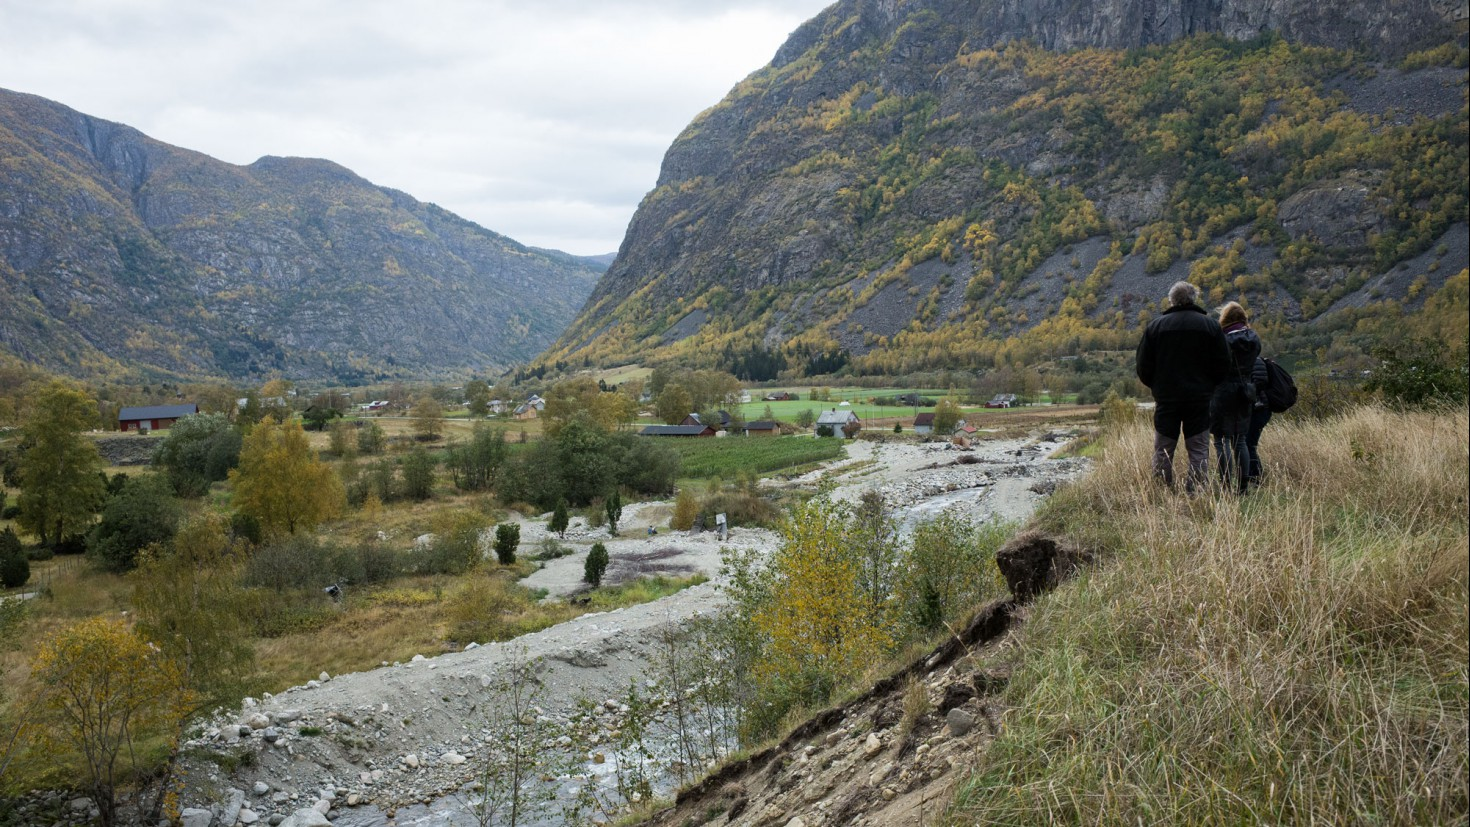 aftermath of flooding in the lærdal valley. Photo: eilif ursin reed